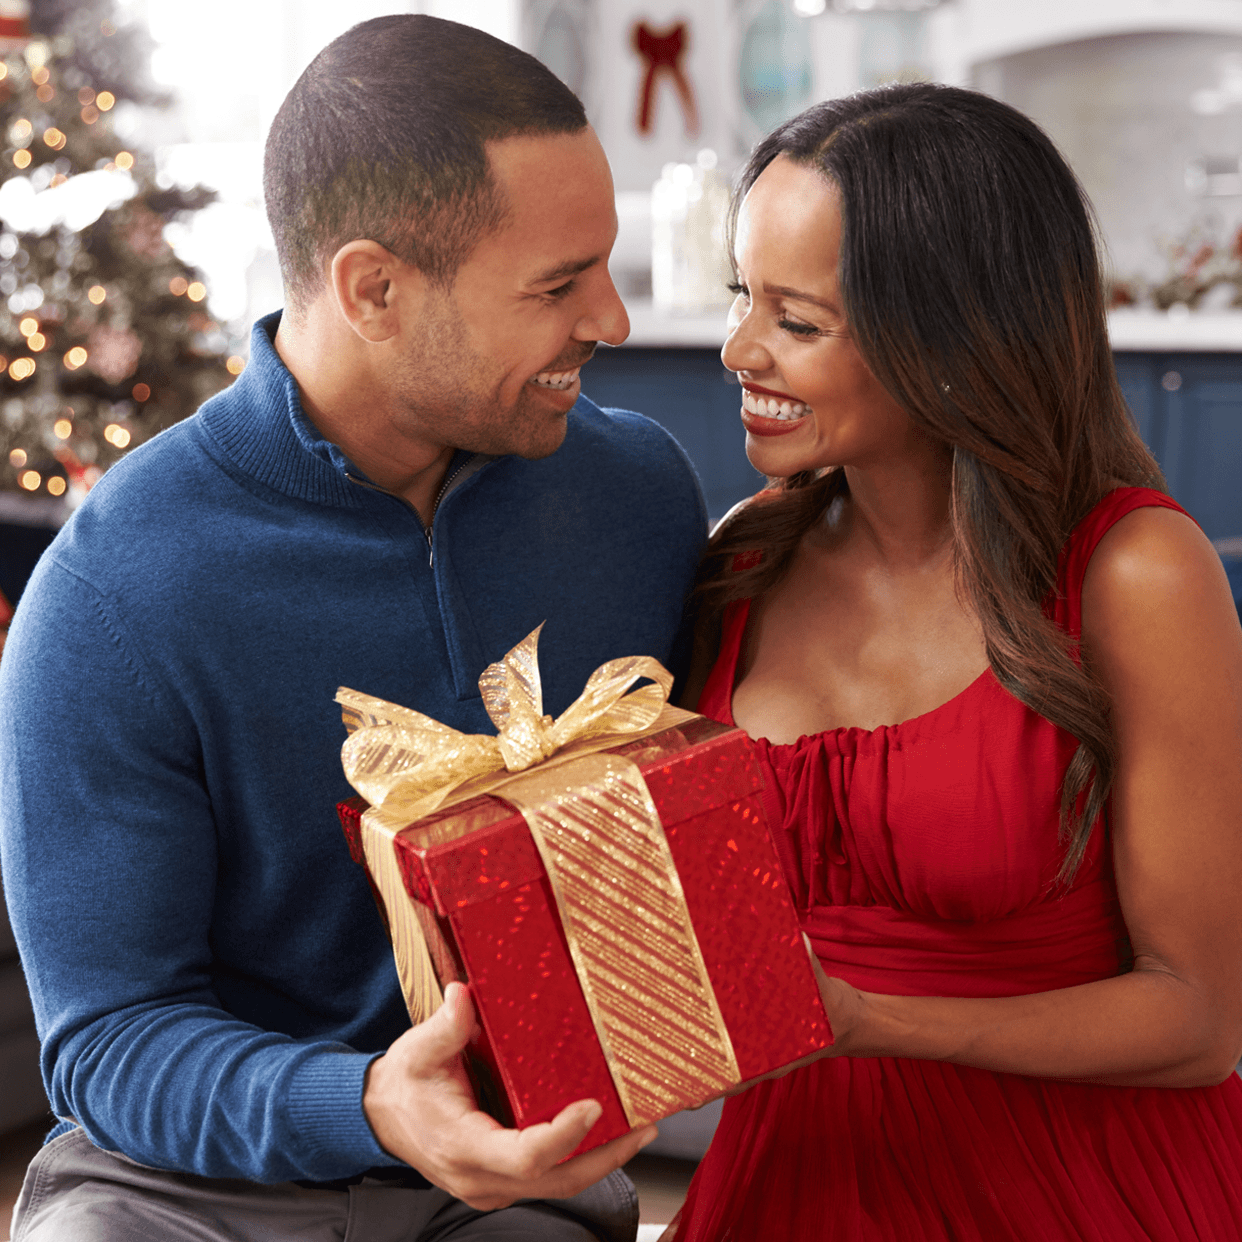 Link to article: Giving the Perfect Gift